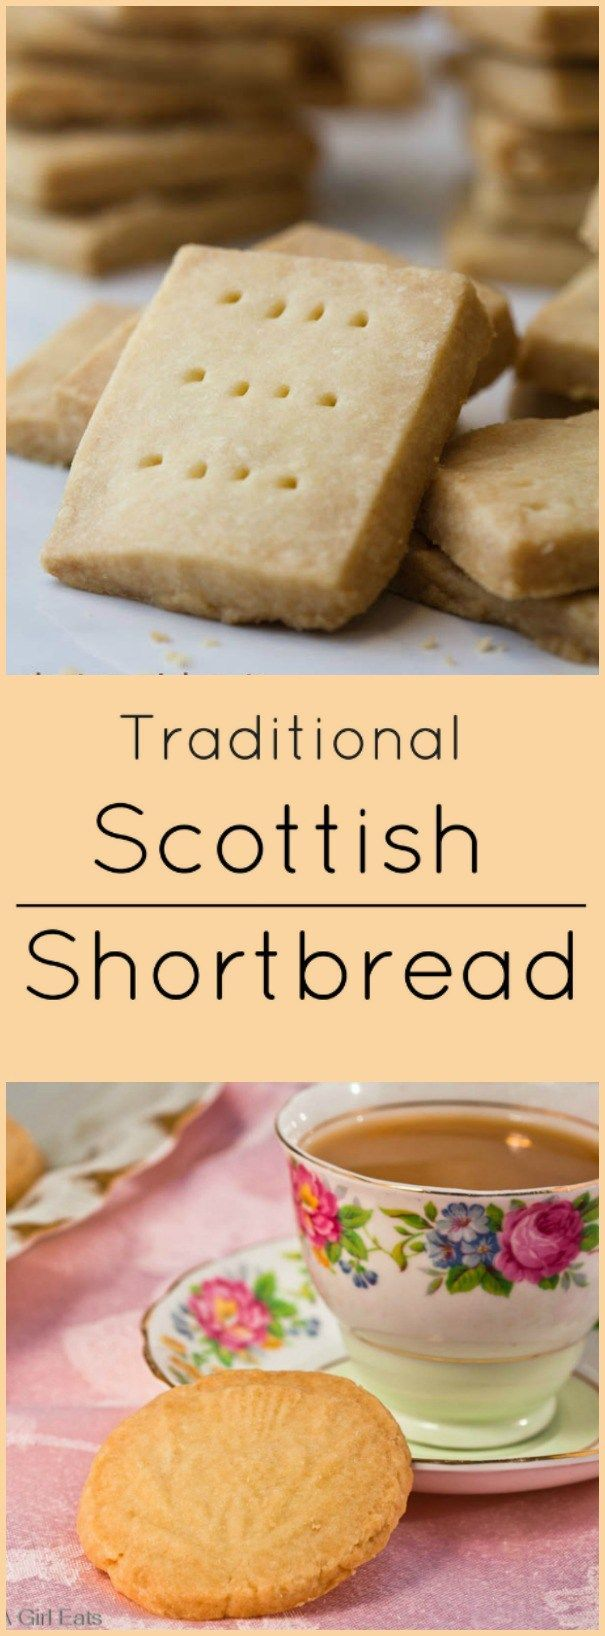 Traditional Scottish Shortbread.